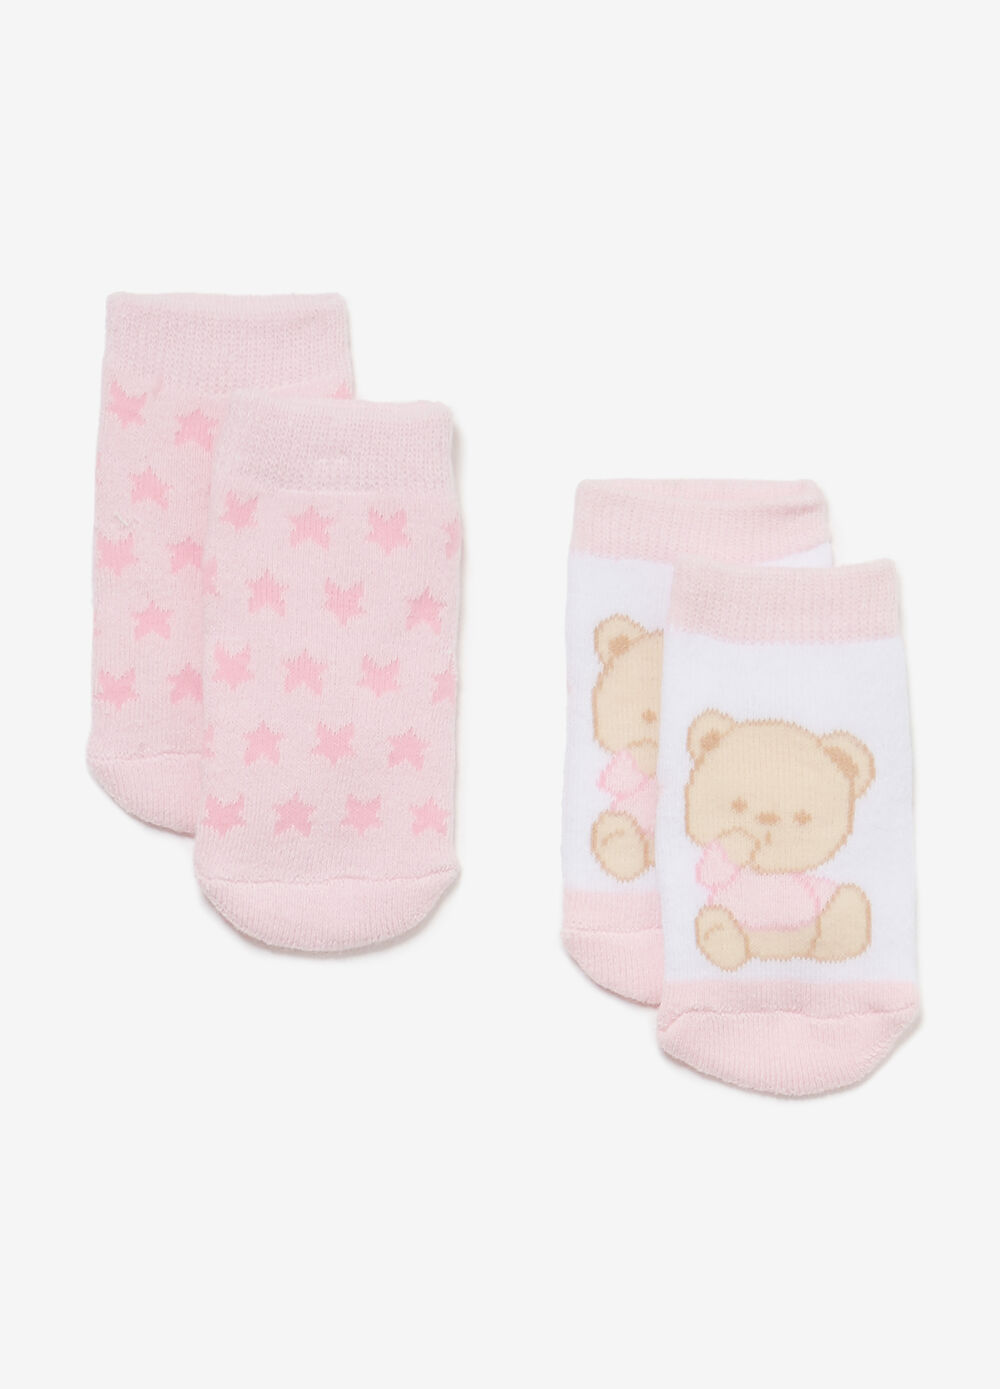 Two-pair pack stars and teddy bears socks